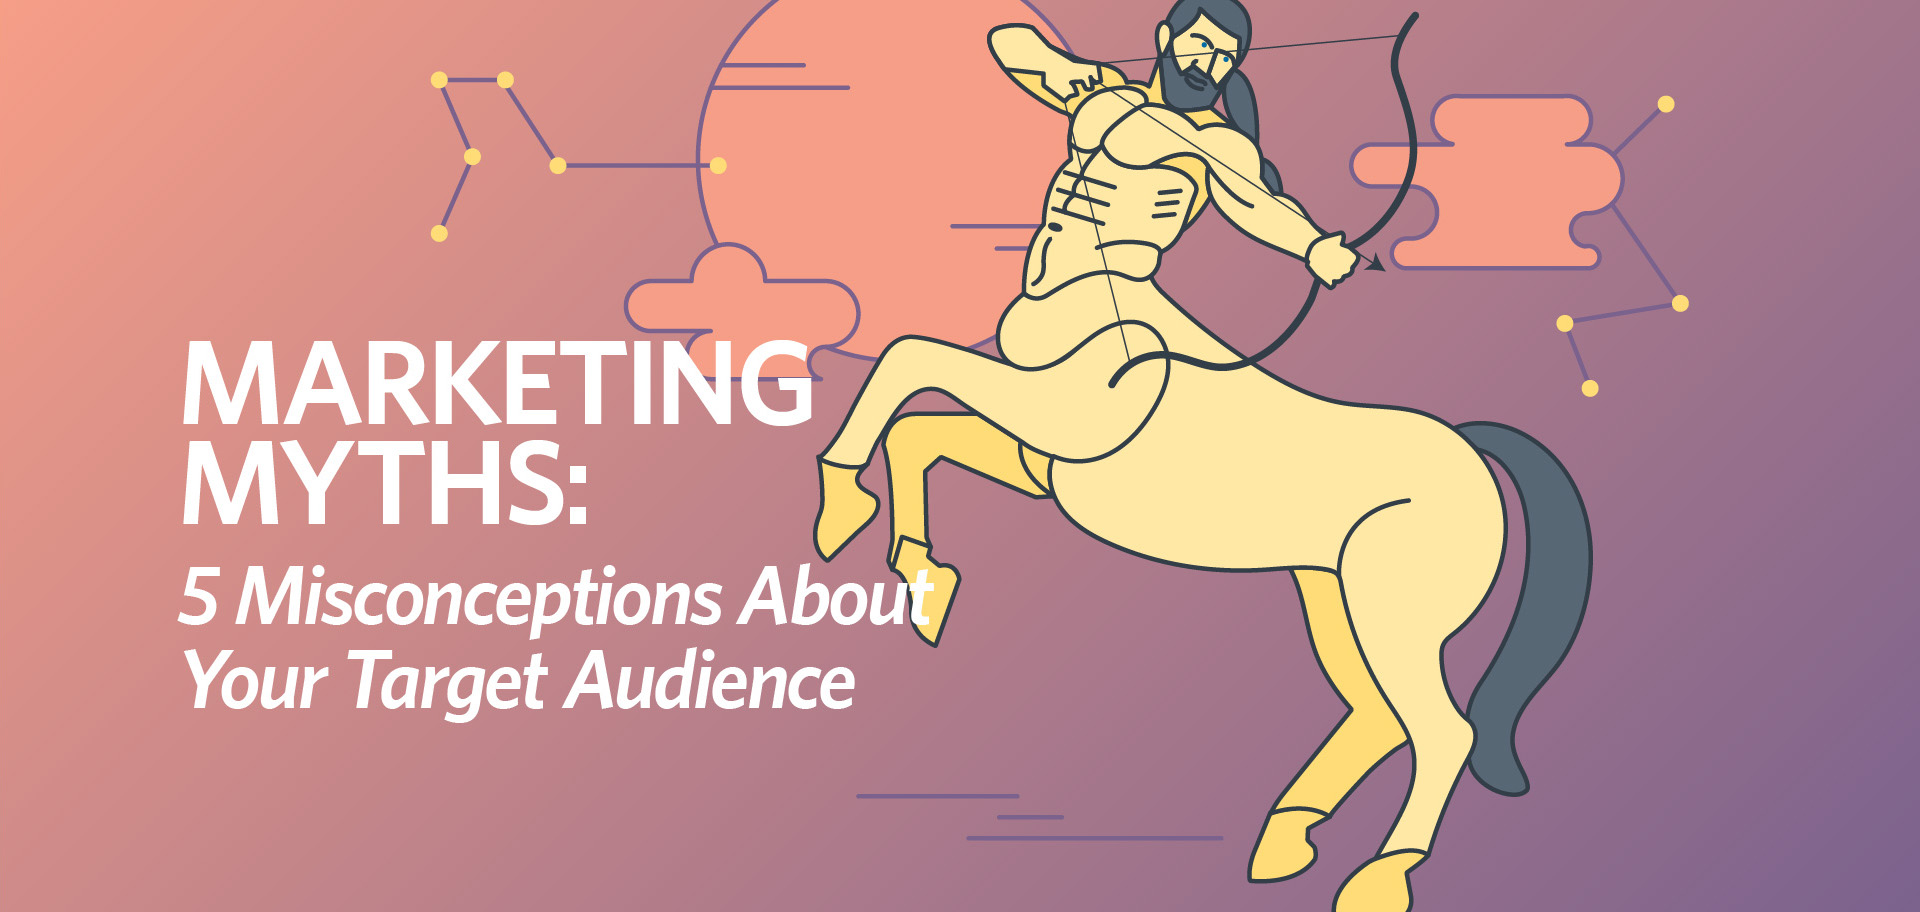 Marketing myths: 5 misconceptions about your target audience; Kettle Fire Creative blog marketing myth Marketing Myths: 5 Misconceptions About Your Target Audience marketing myths fi